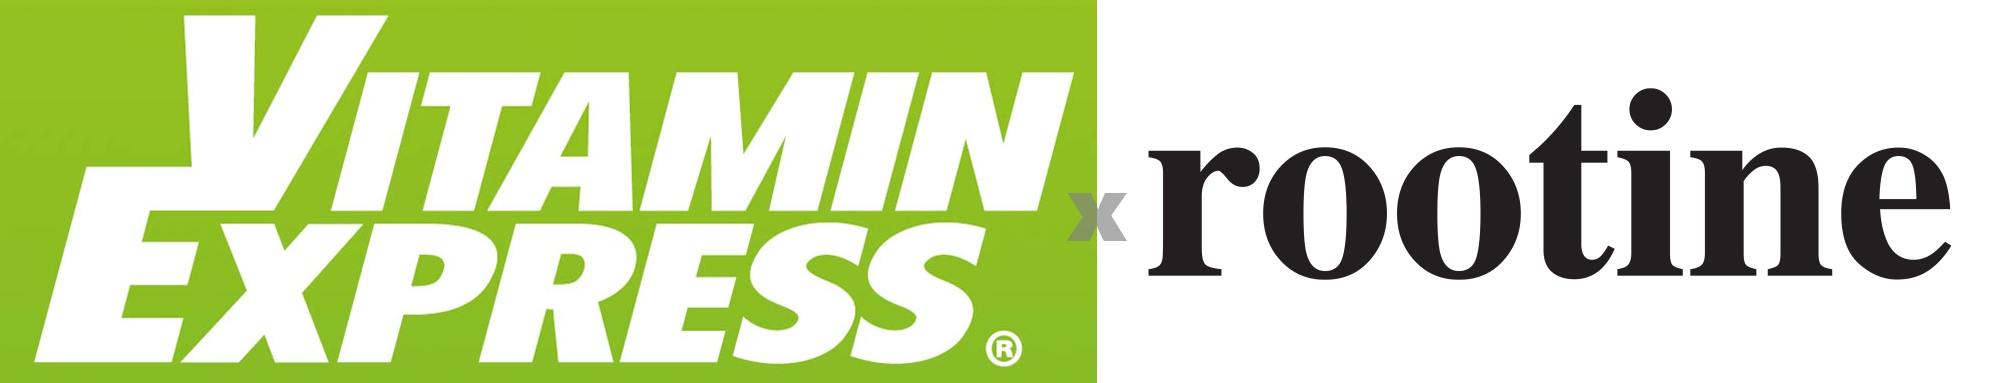 Vitamin Express partners with Rootine